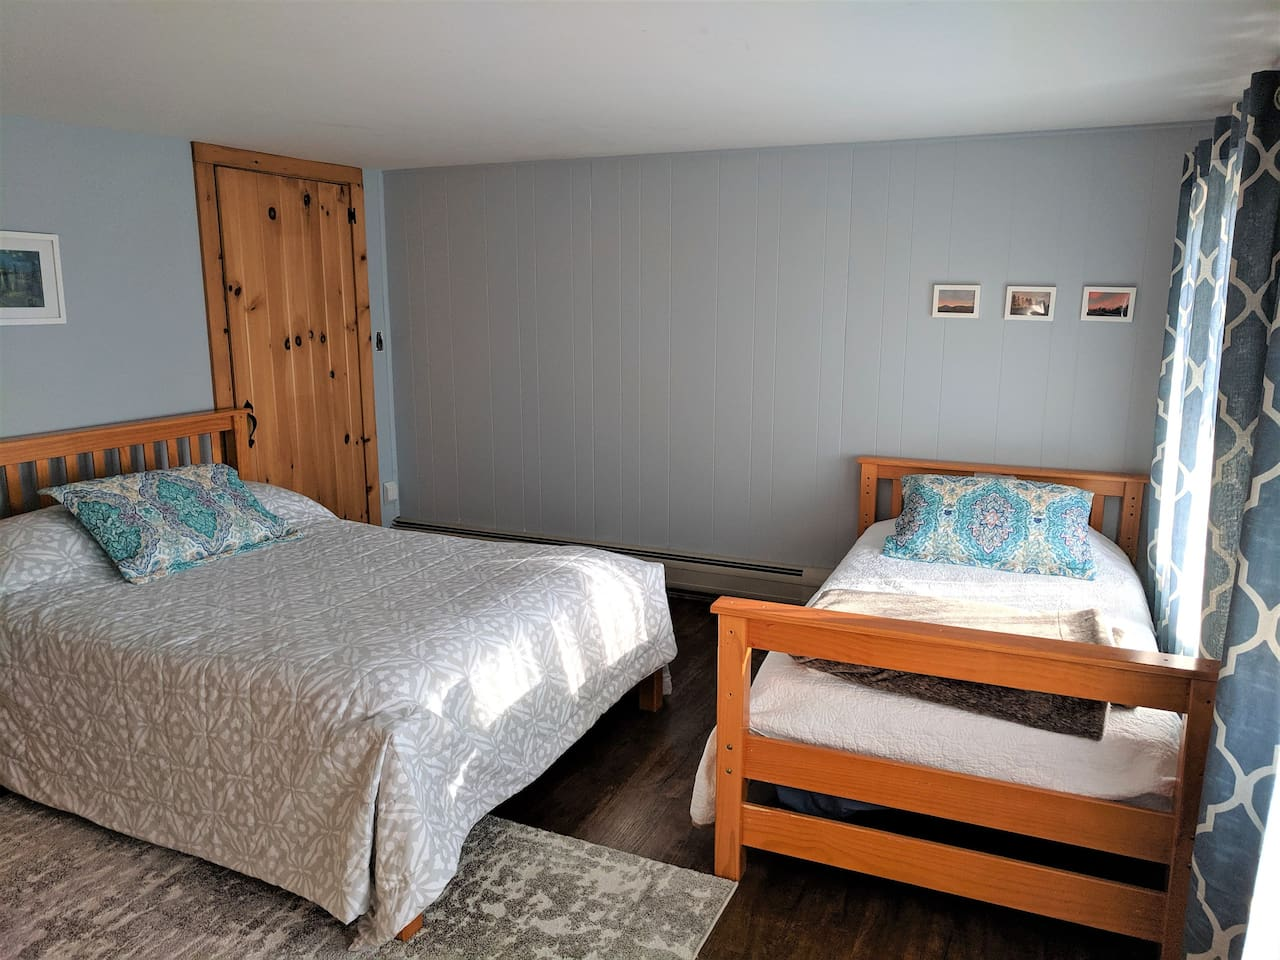 Bedroom with one full bed and one twin bed